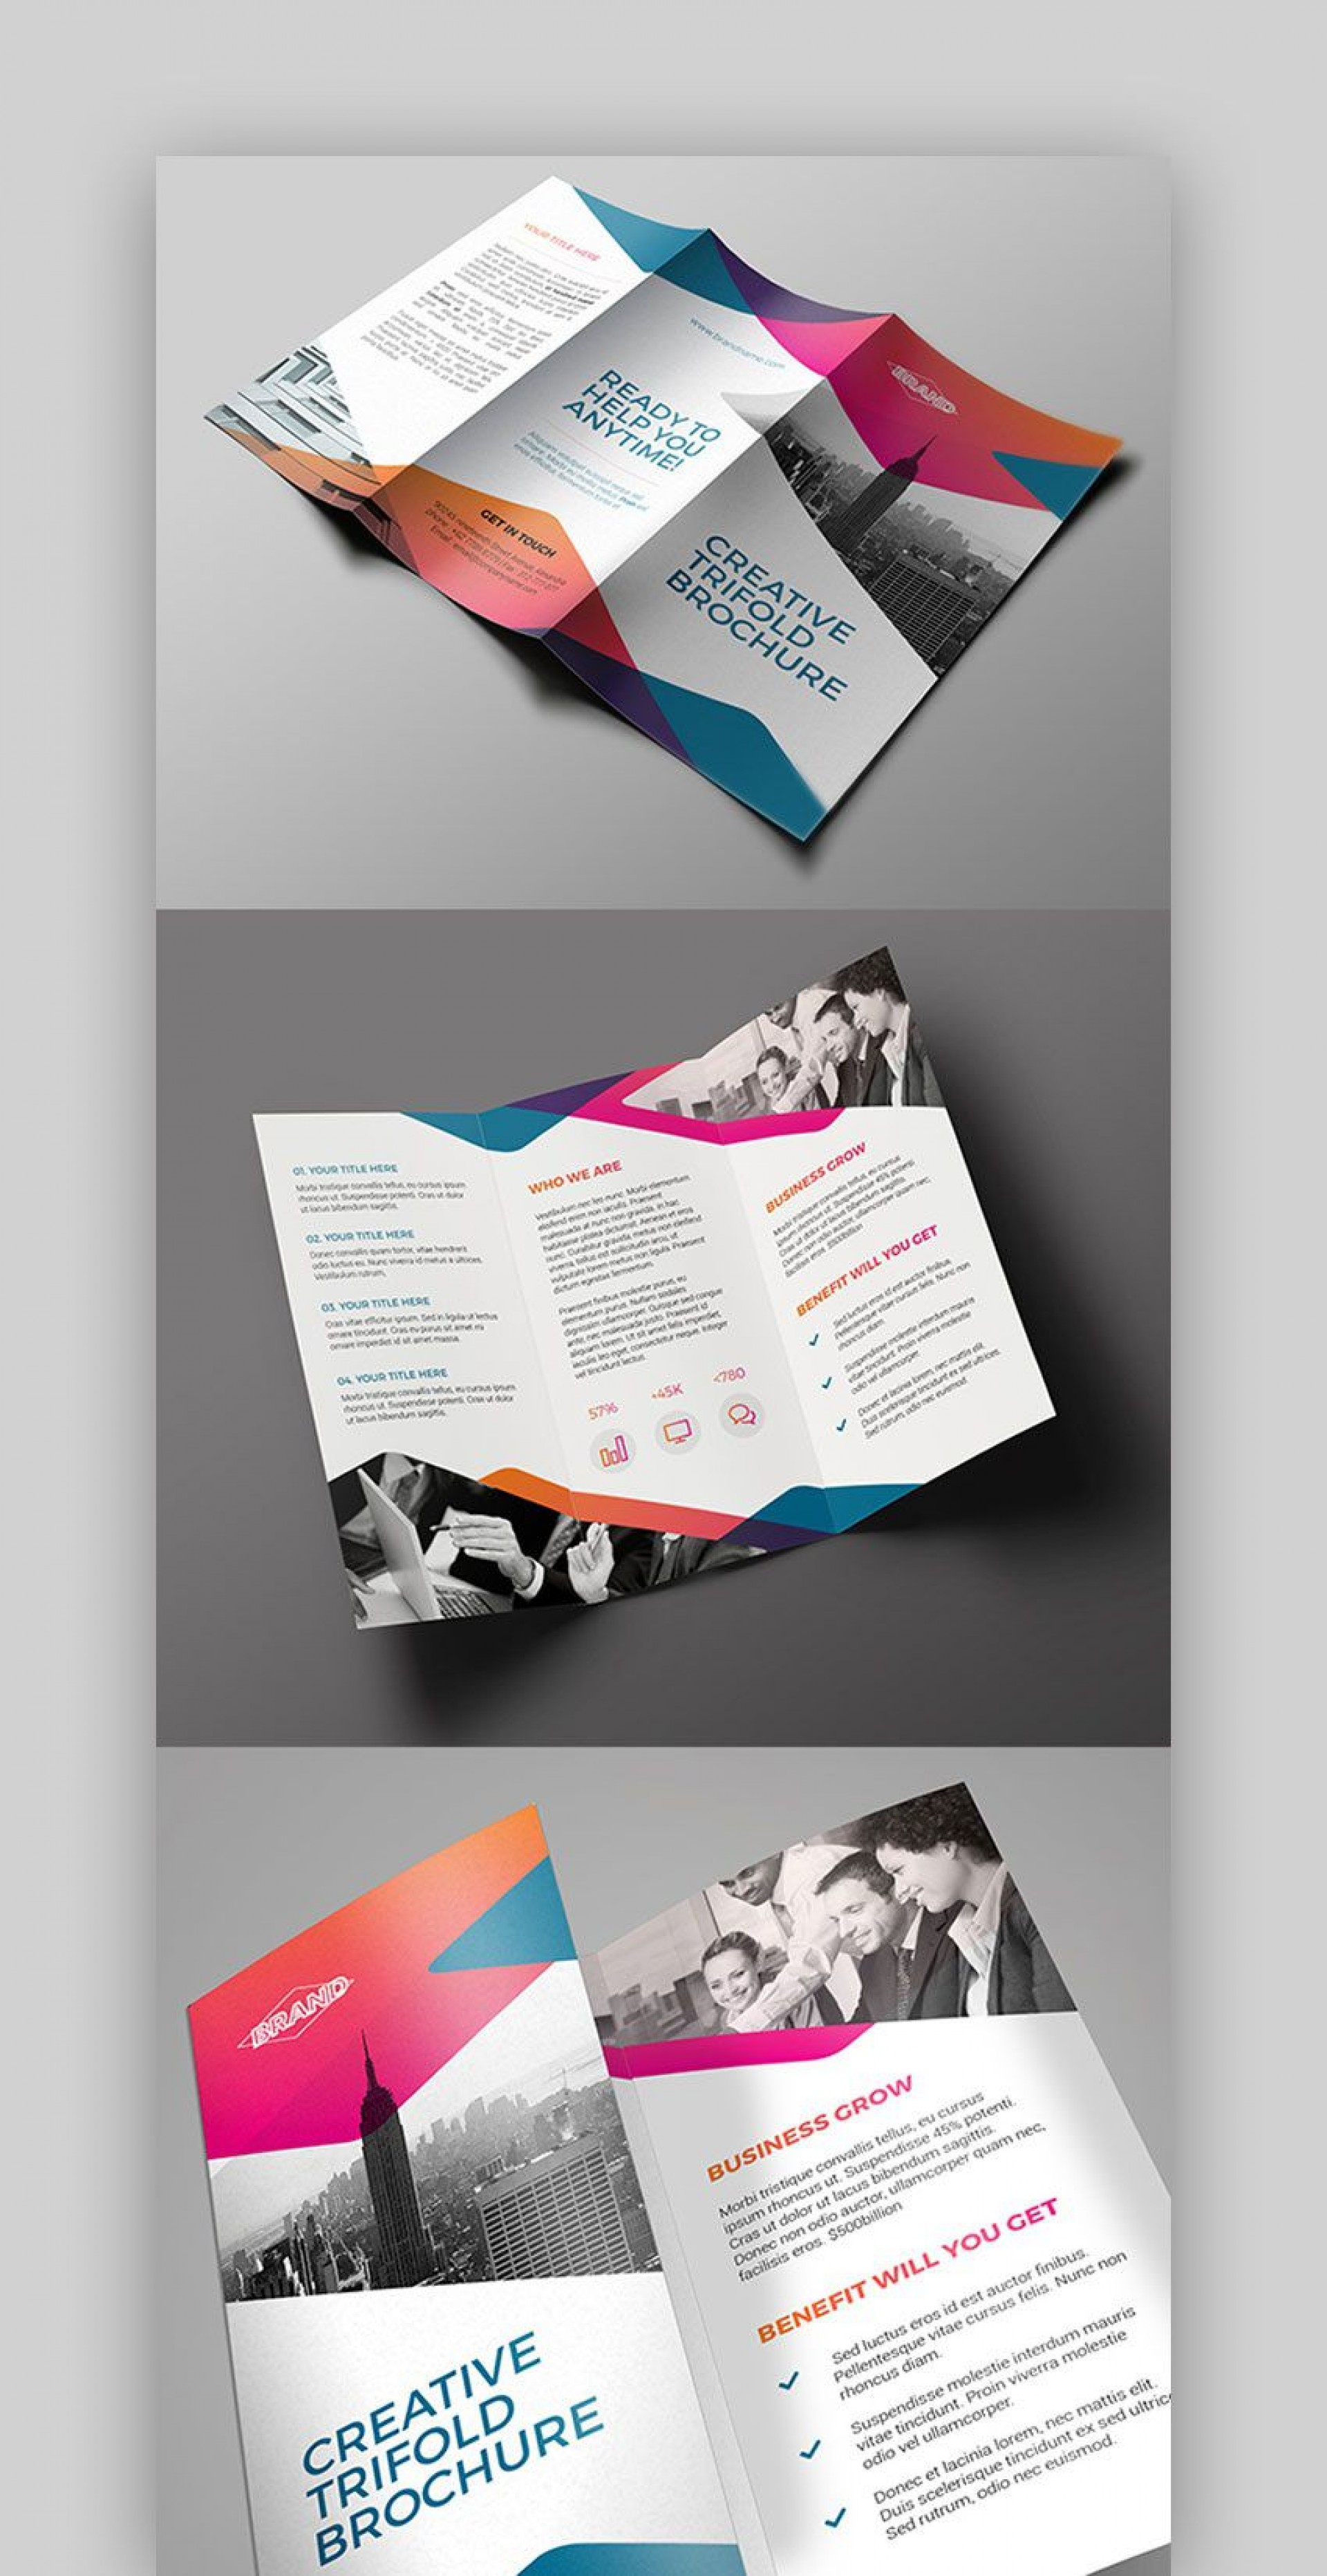 008 Amazing Indesign Trifold Brochure Template Picture  Tri Fold A4 Bi Free Download1920